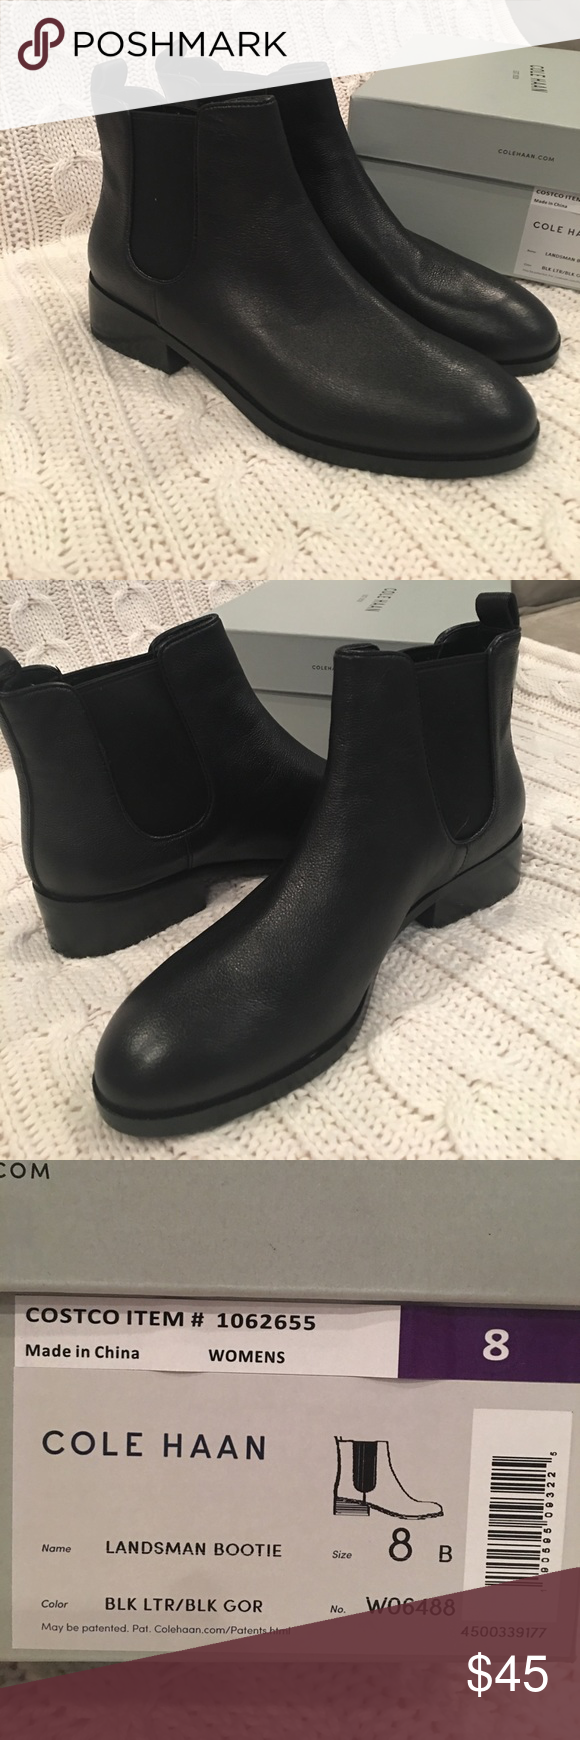 Bought Cole Haan booties from Costco, never worn. I have